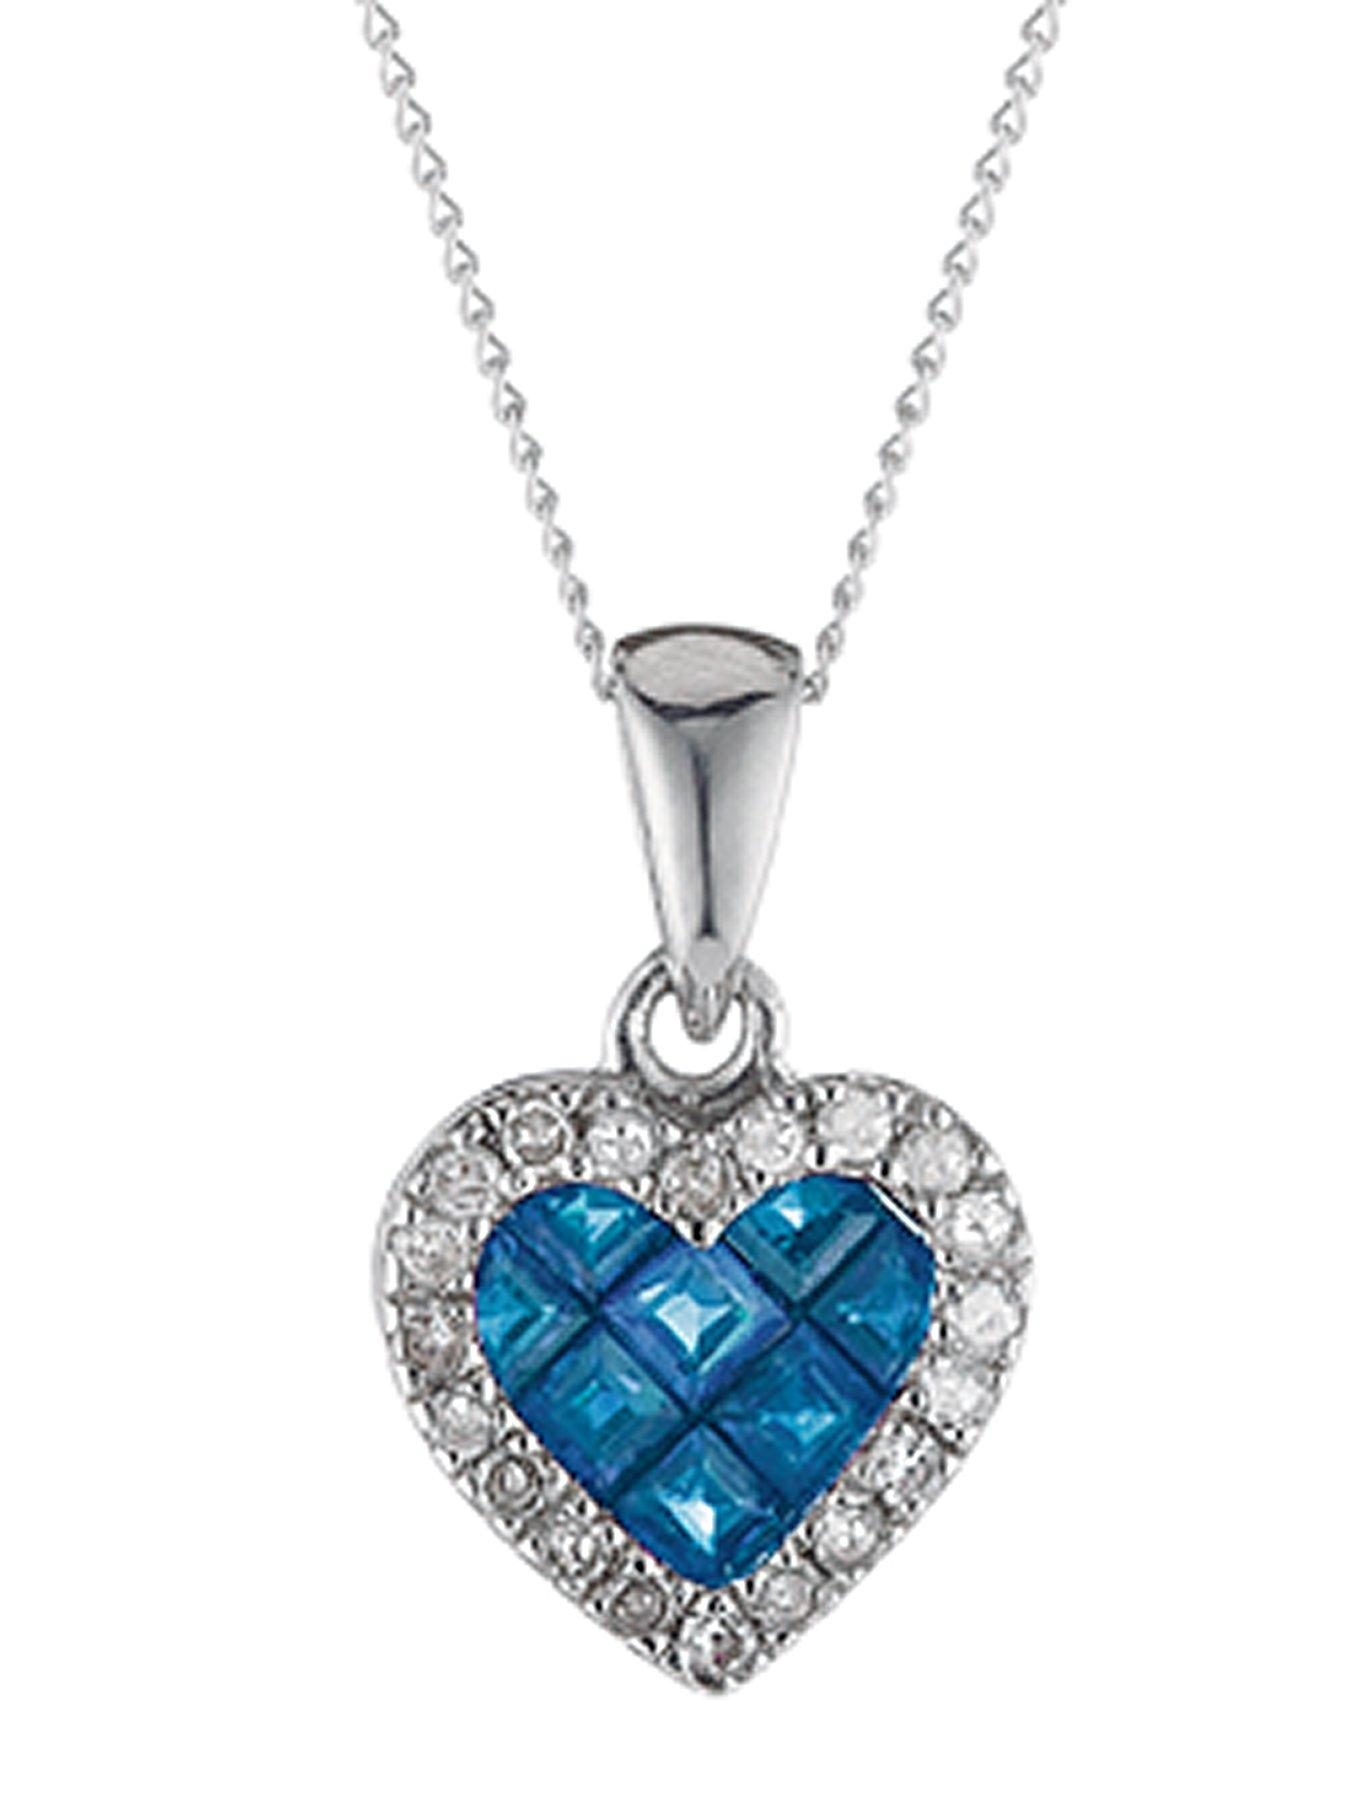 9 Carat White Gold Sapphire and Diamond Heart Pendant